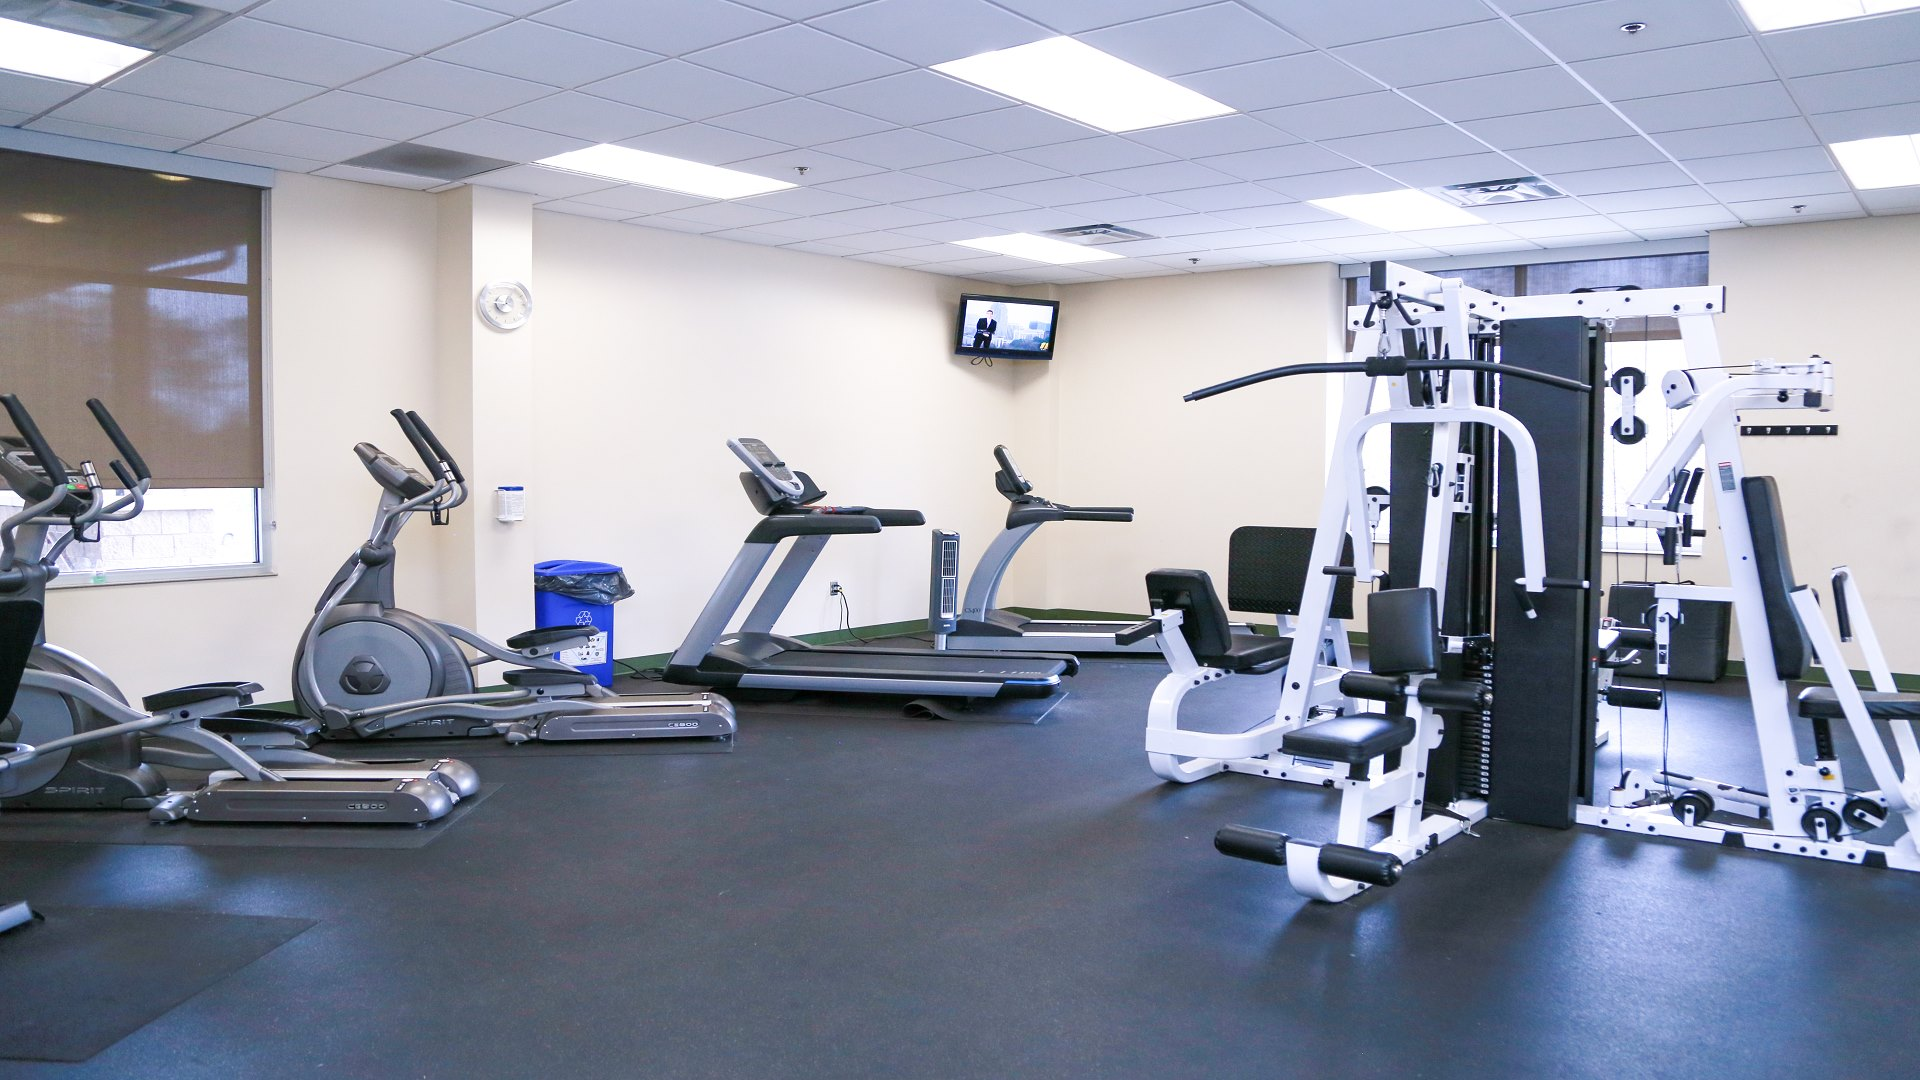 An indoor fitness room with equipment and a stretching station at Marsh Creek